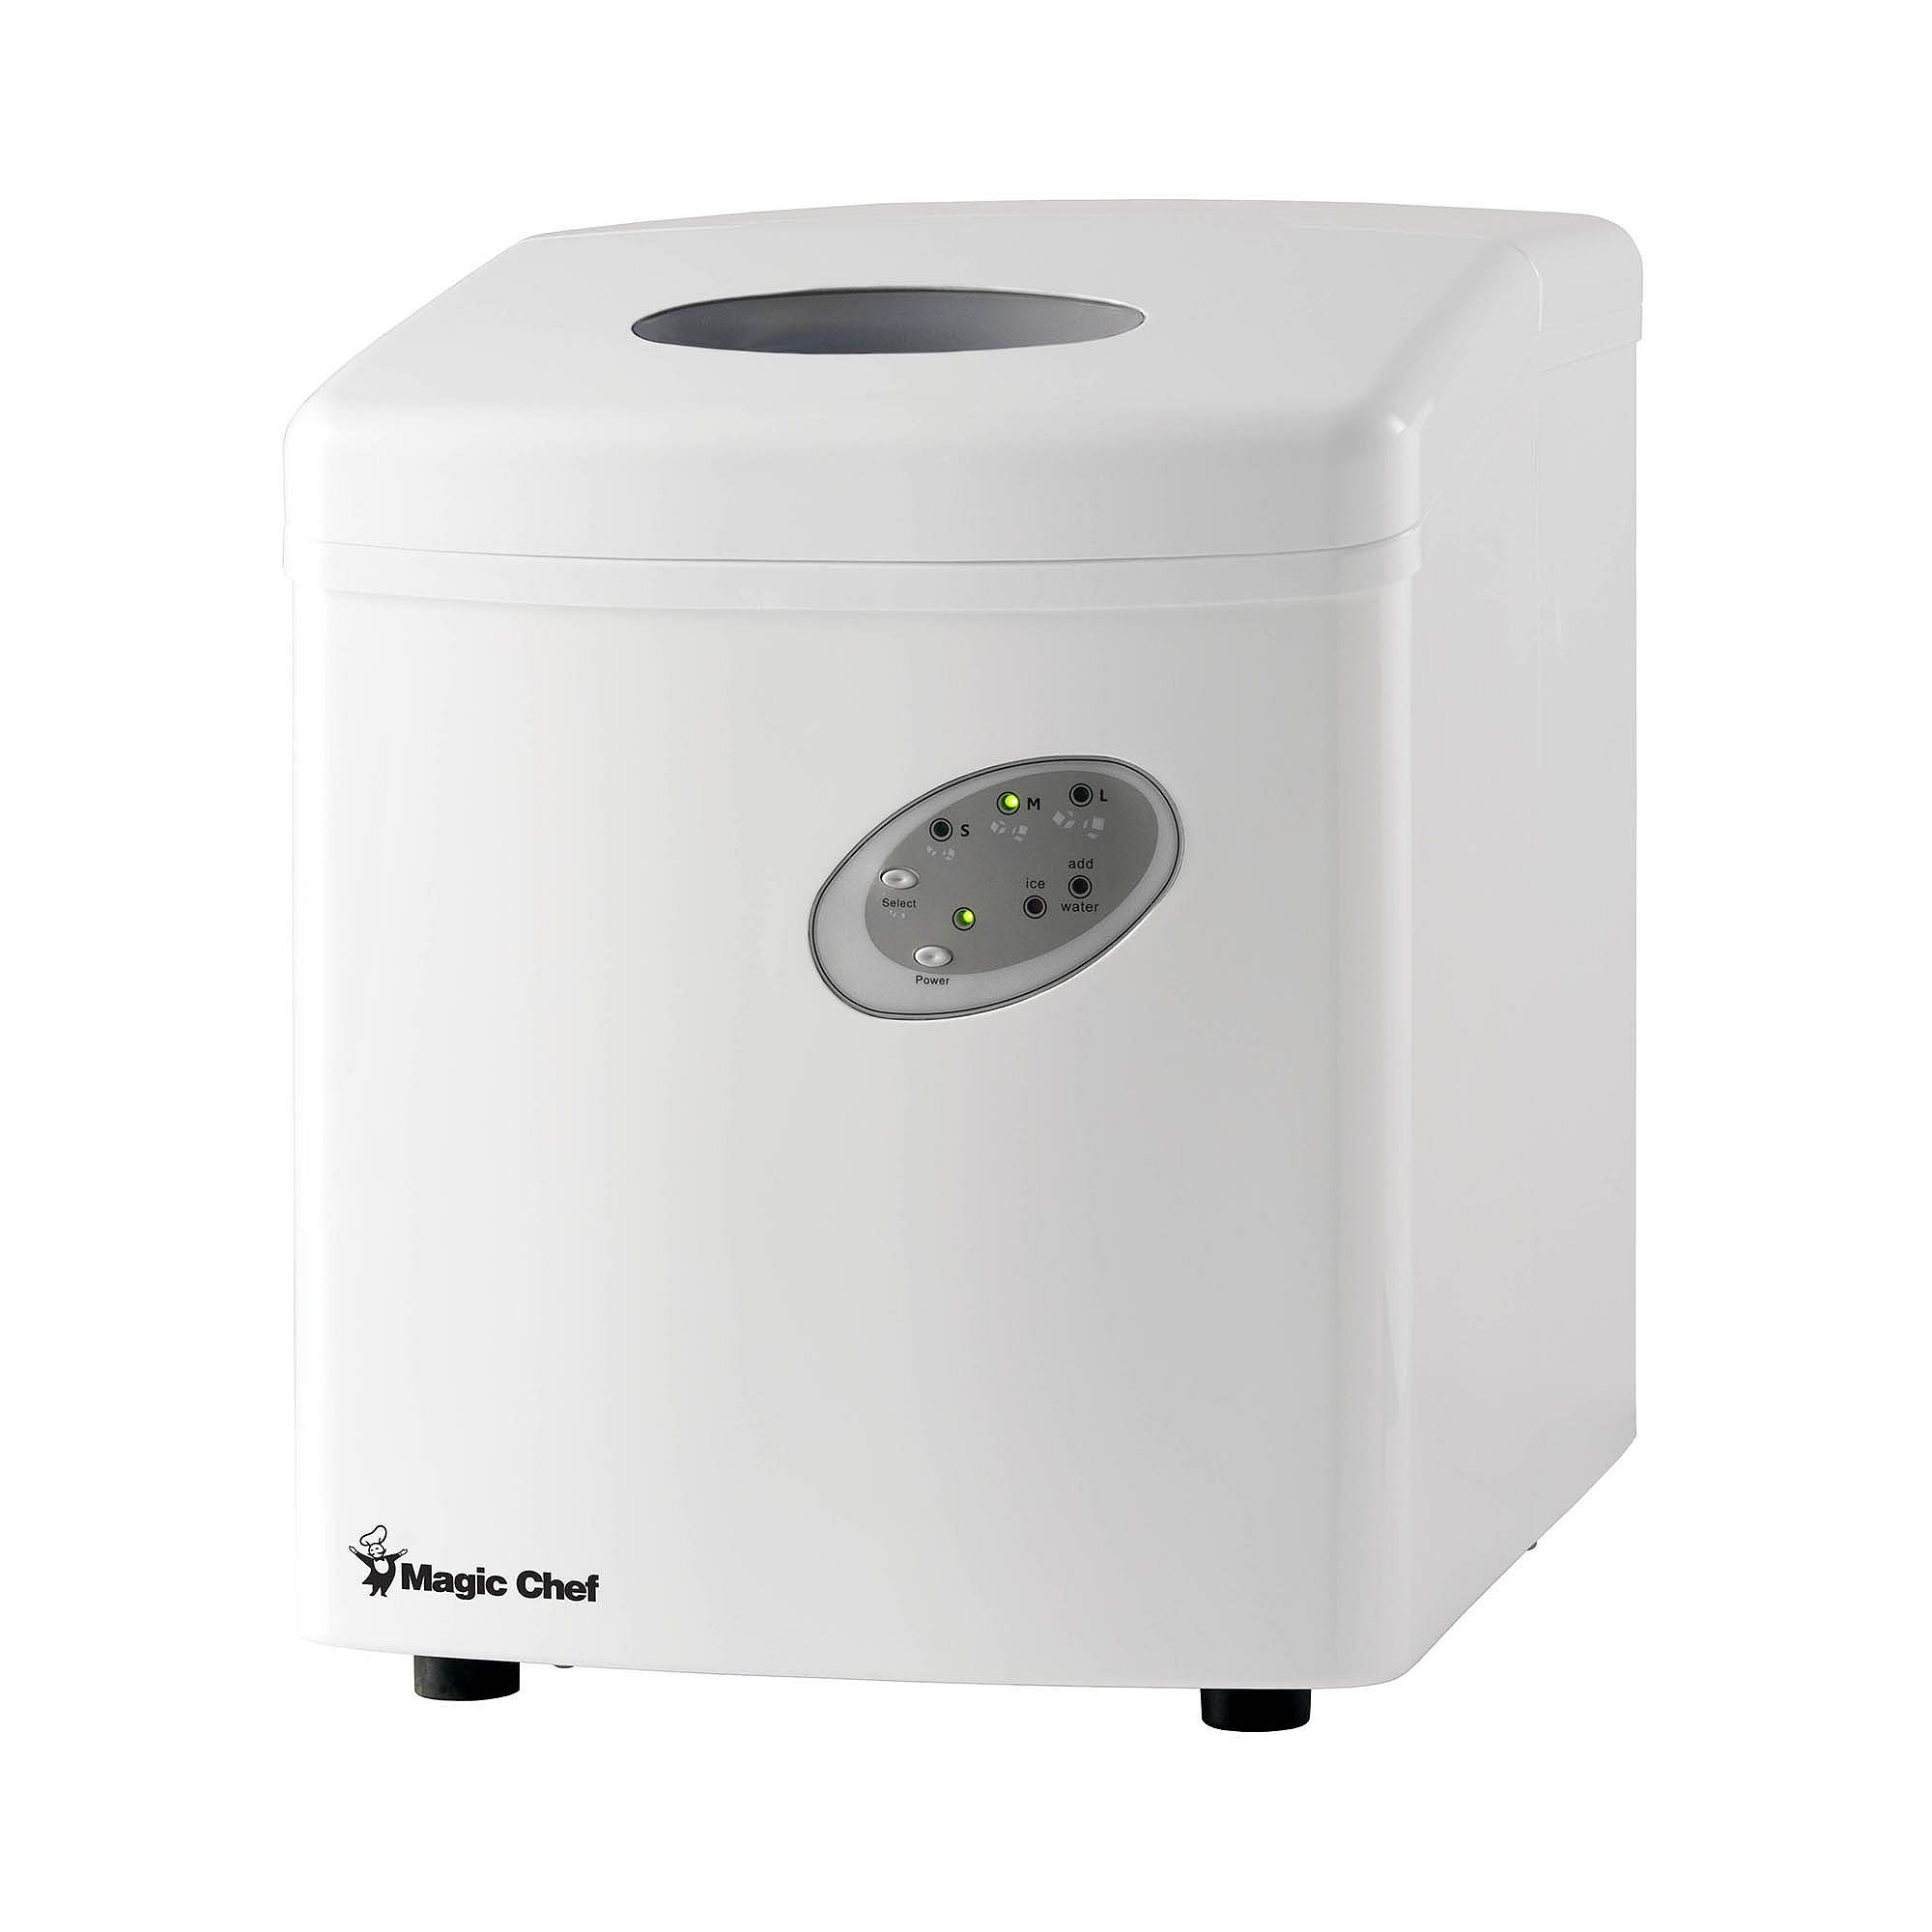 Countertop Ice Maker At Target : chef 27 lb countertop ice maker magic chef 27 lb countertop ice maker ...